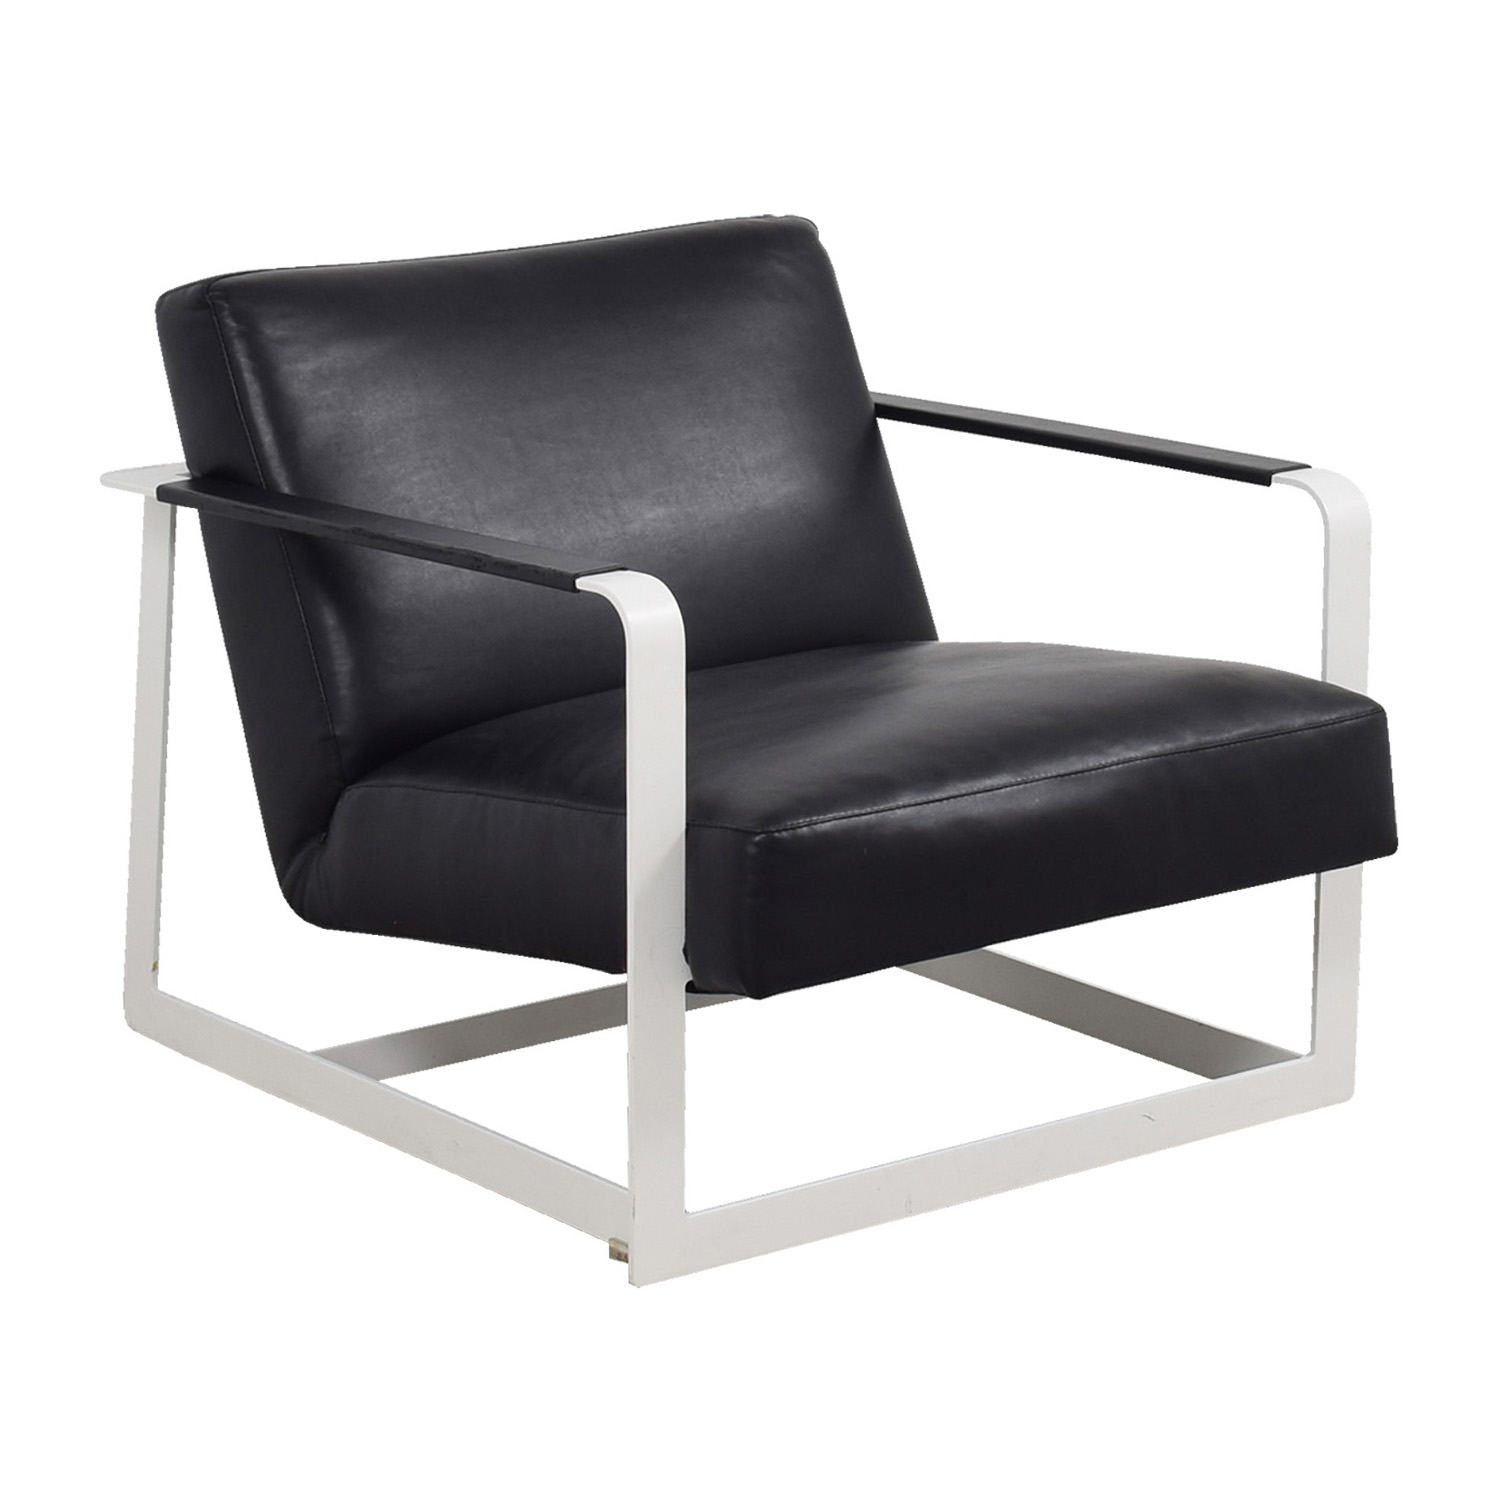 ... Modloft Crosby Black And White Lounge Chair / Chairs ...